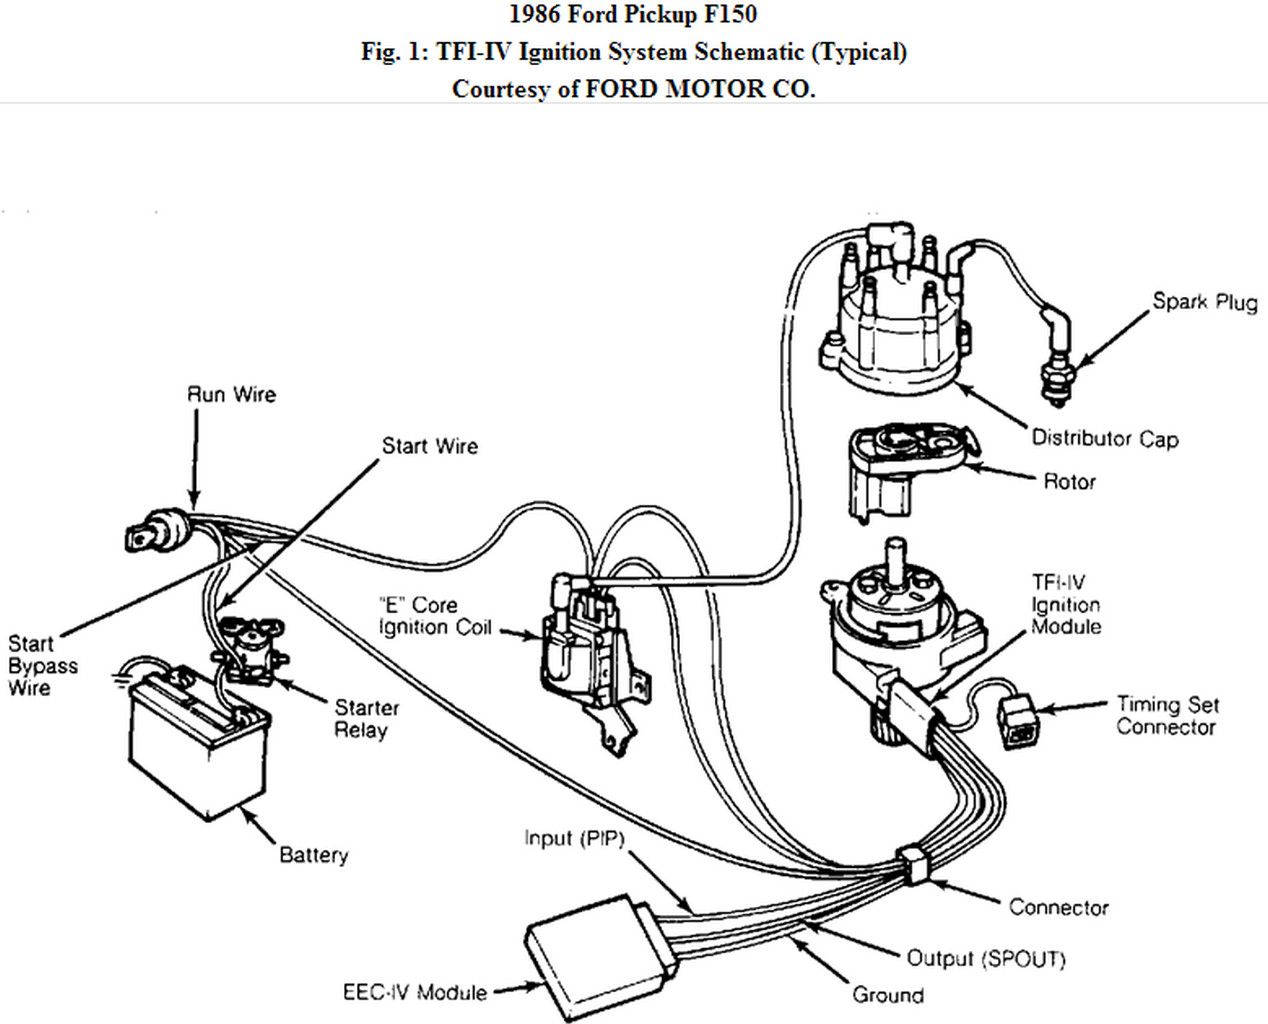 92 Ford Ranger Spark Plug Wiring Diagram from static-cdn.imageservice.cloud